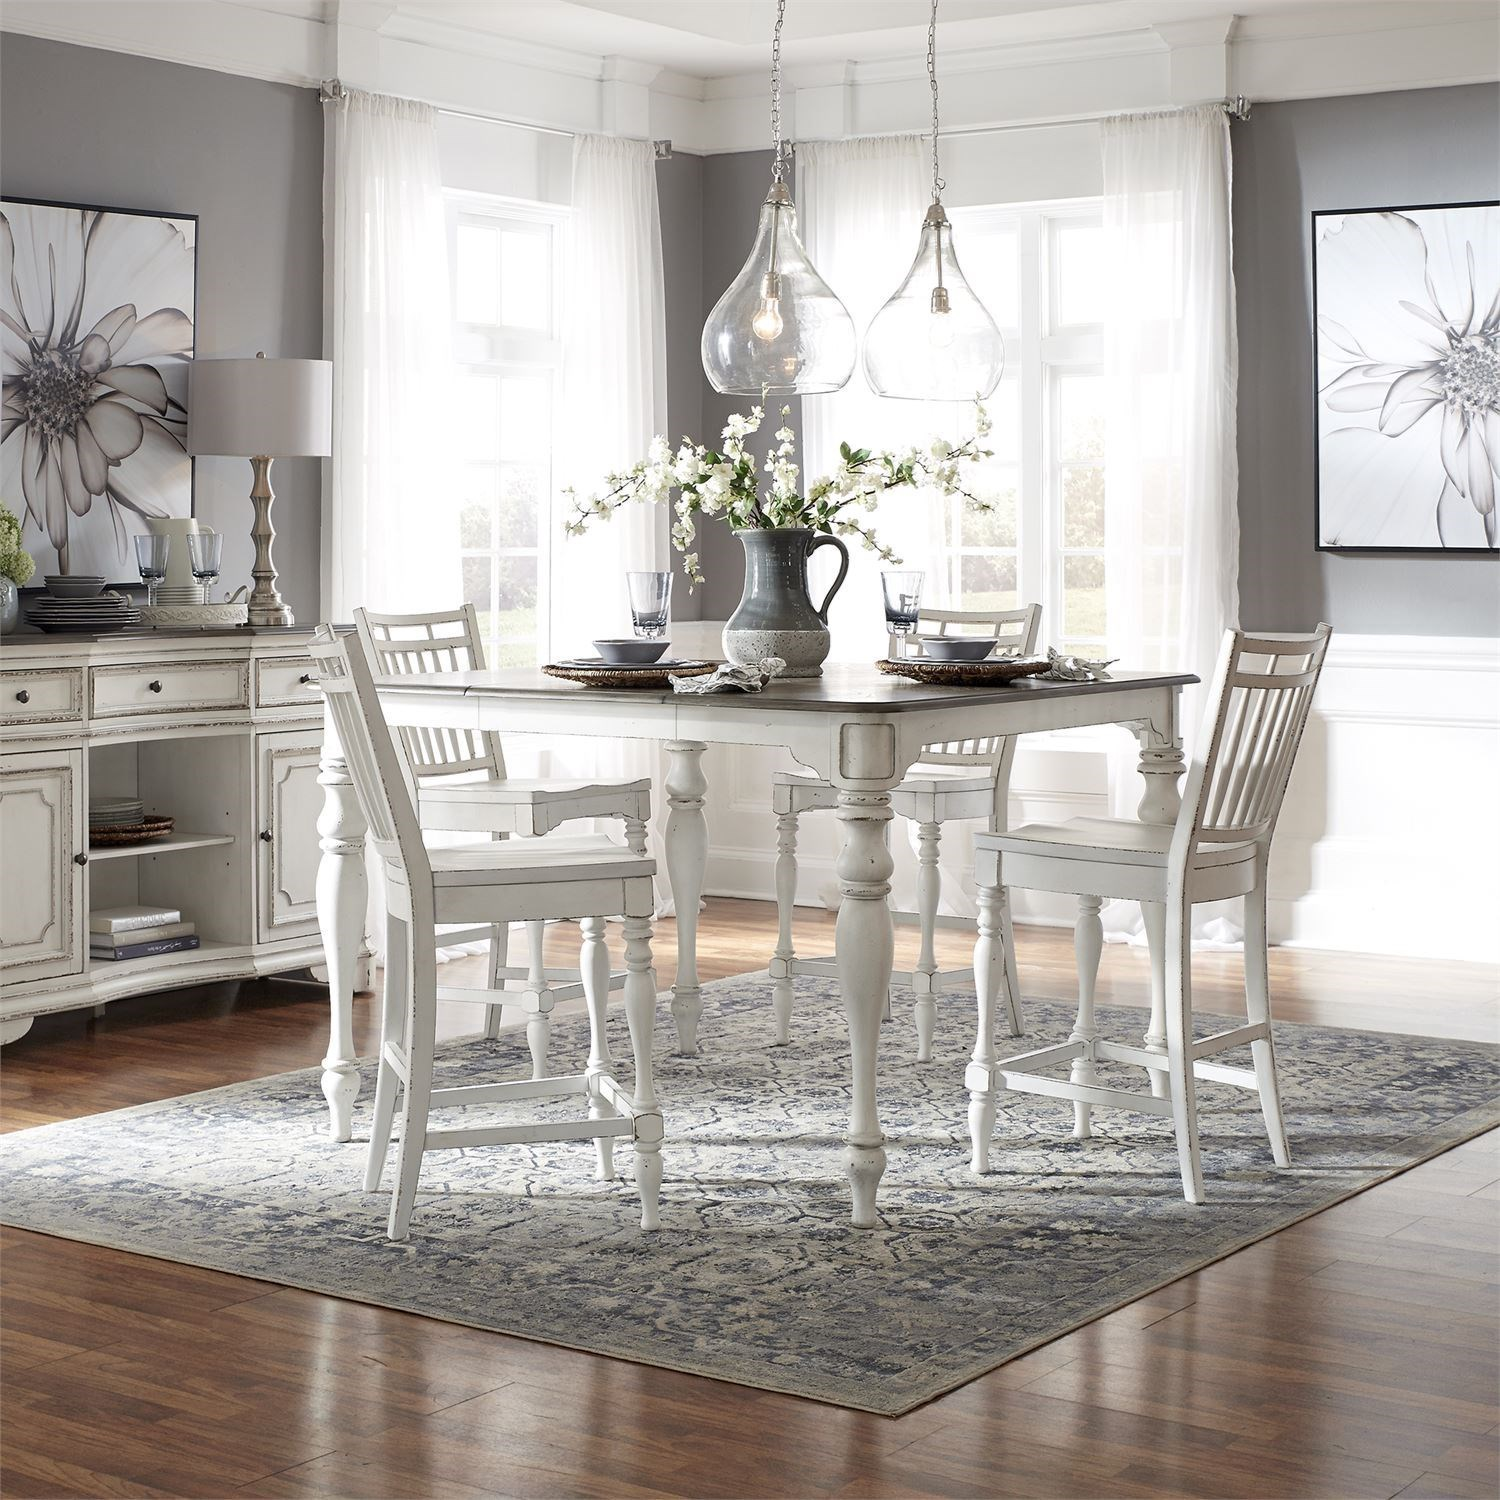 Morgan 5-Piece Counter Height Table and Chair Set by Libby at Walker's Furniture